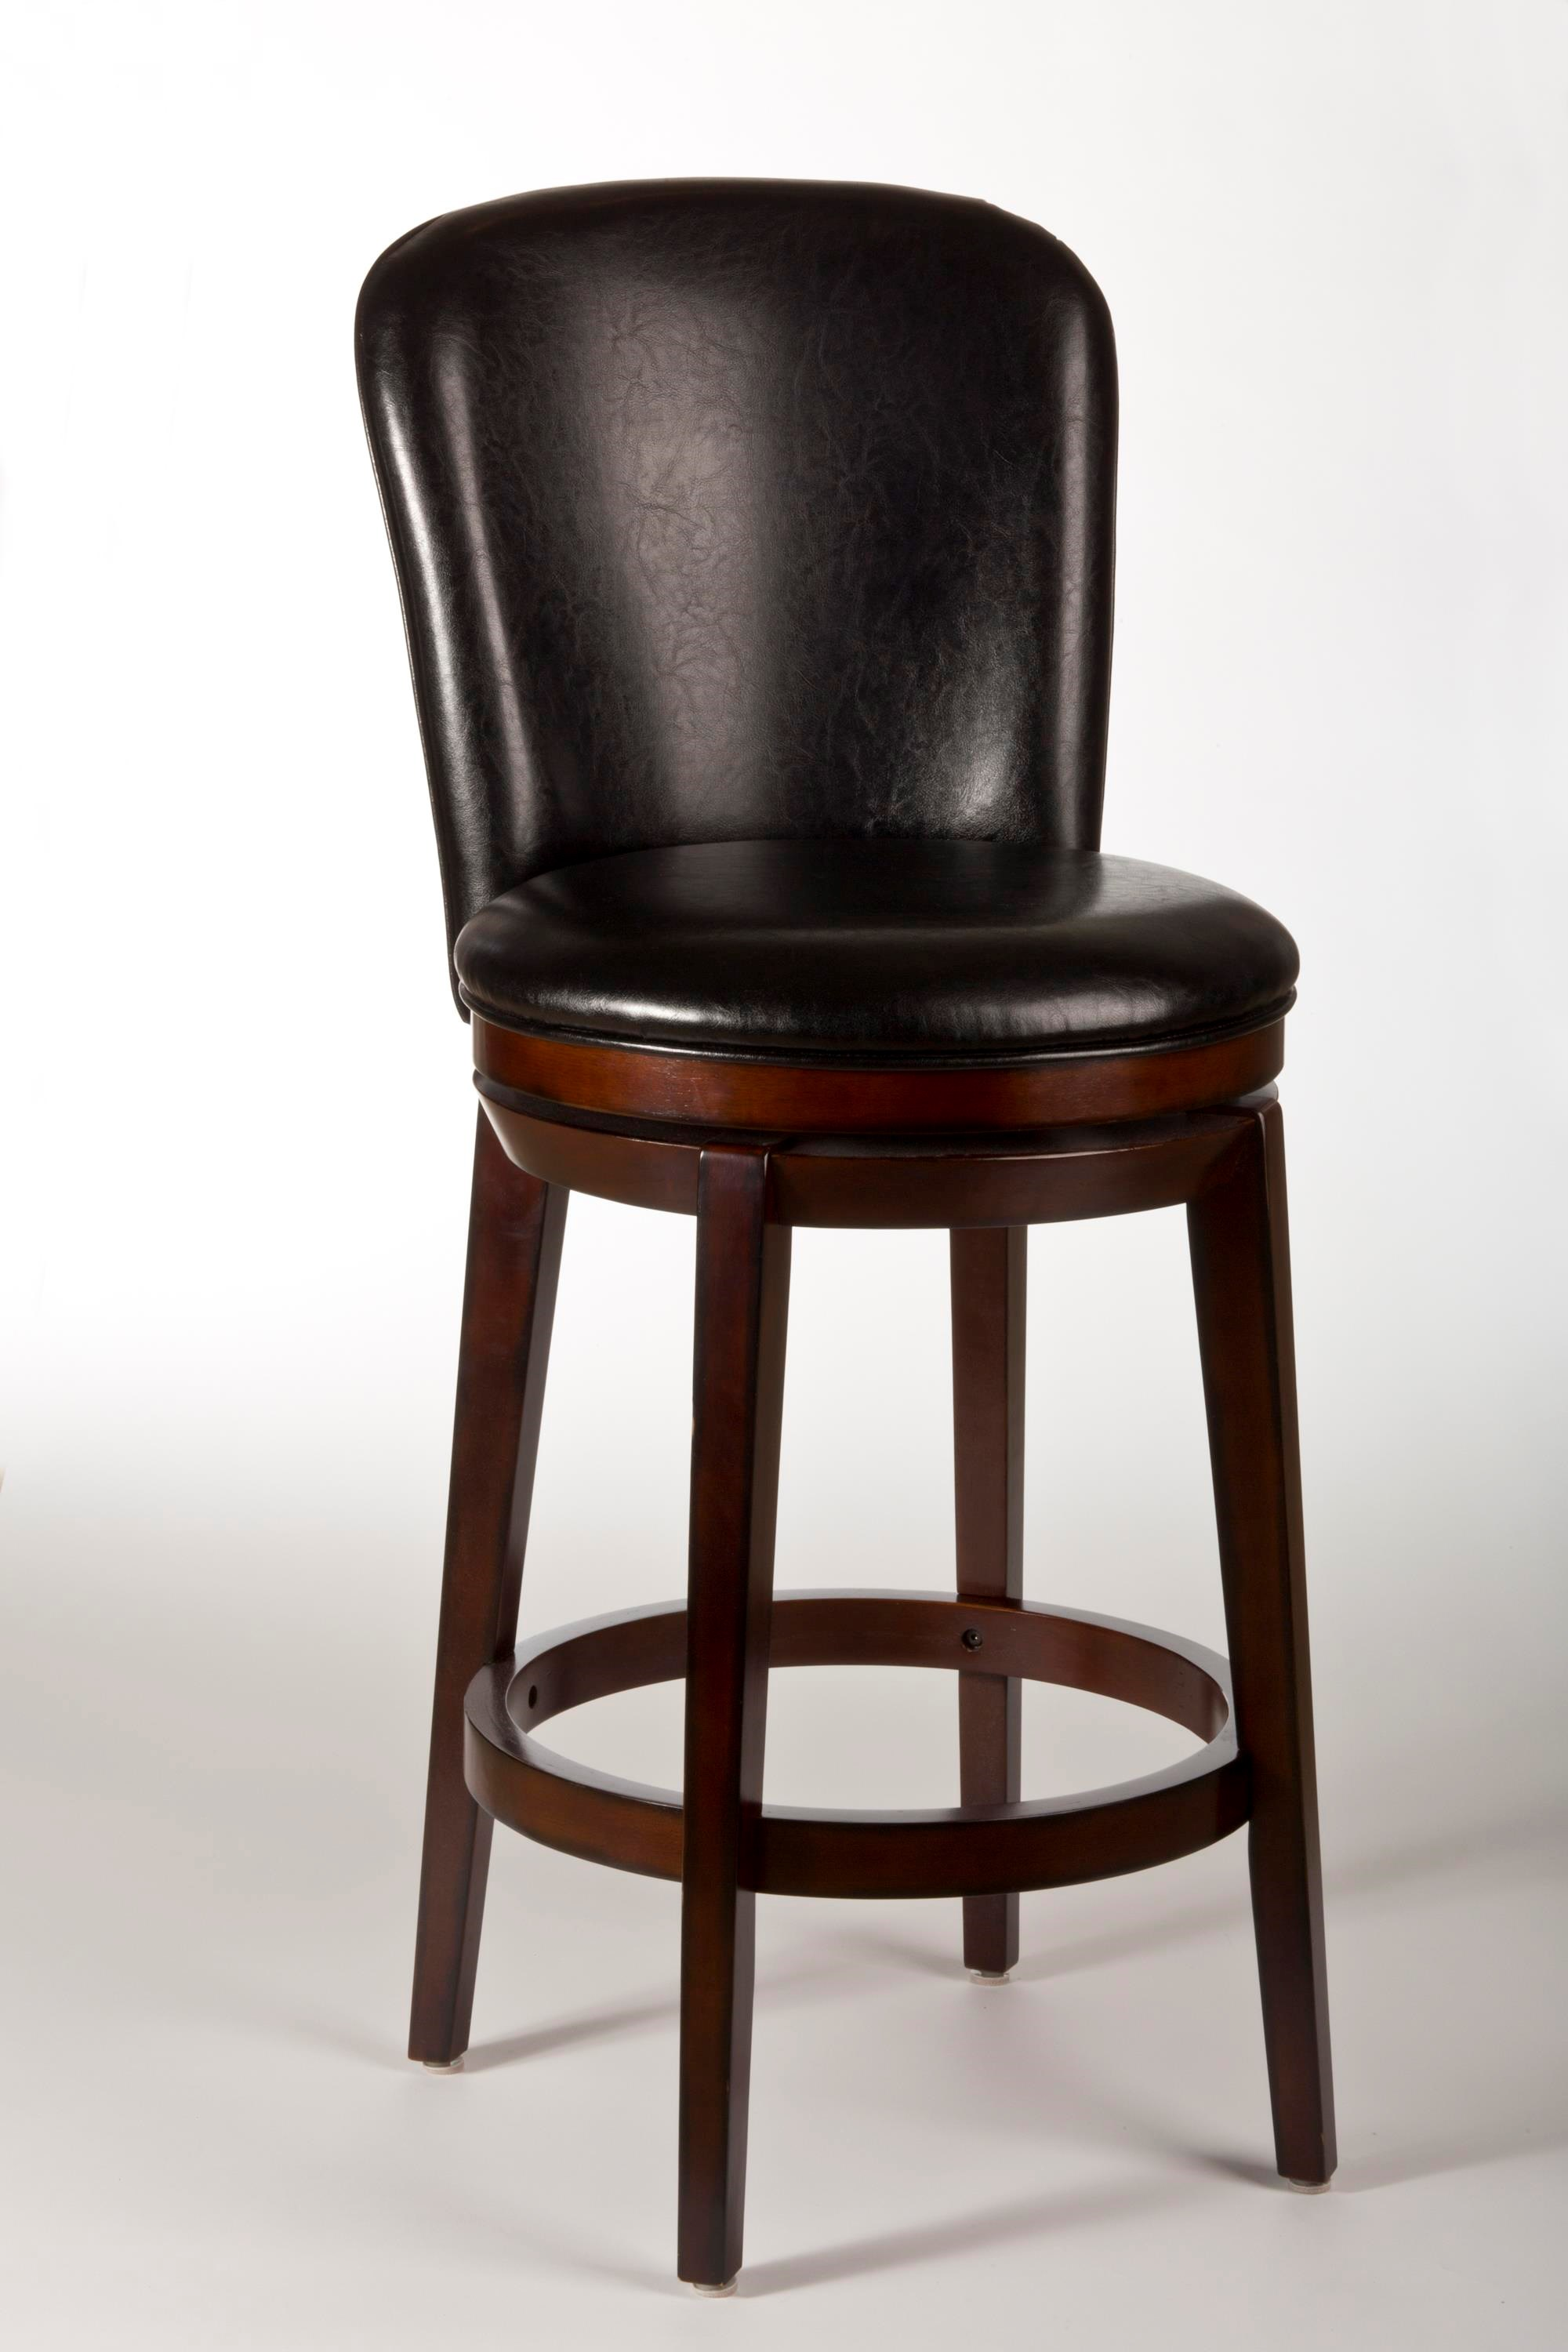 Victoria Swivel Counter Stool with Splayed Legs